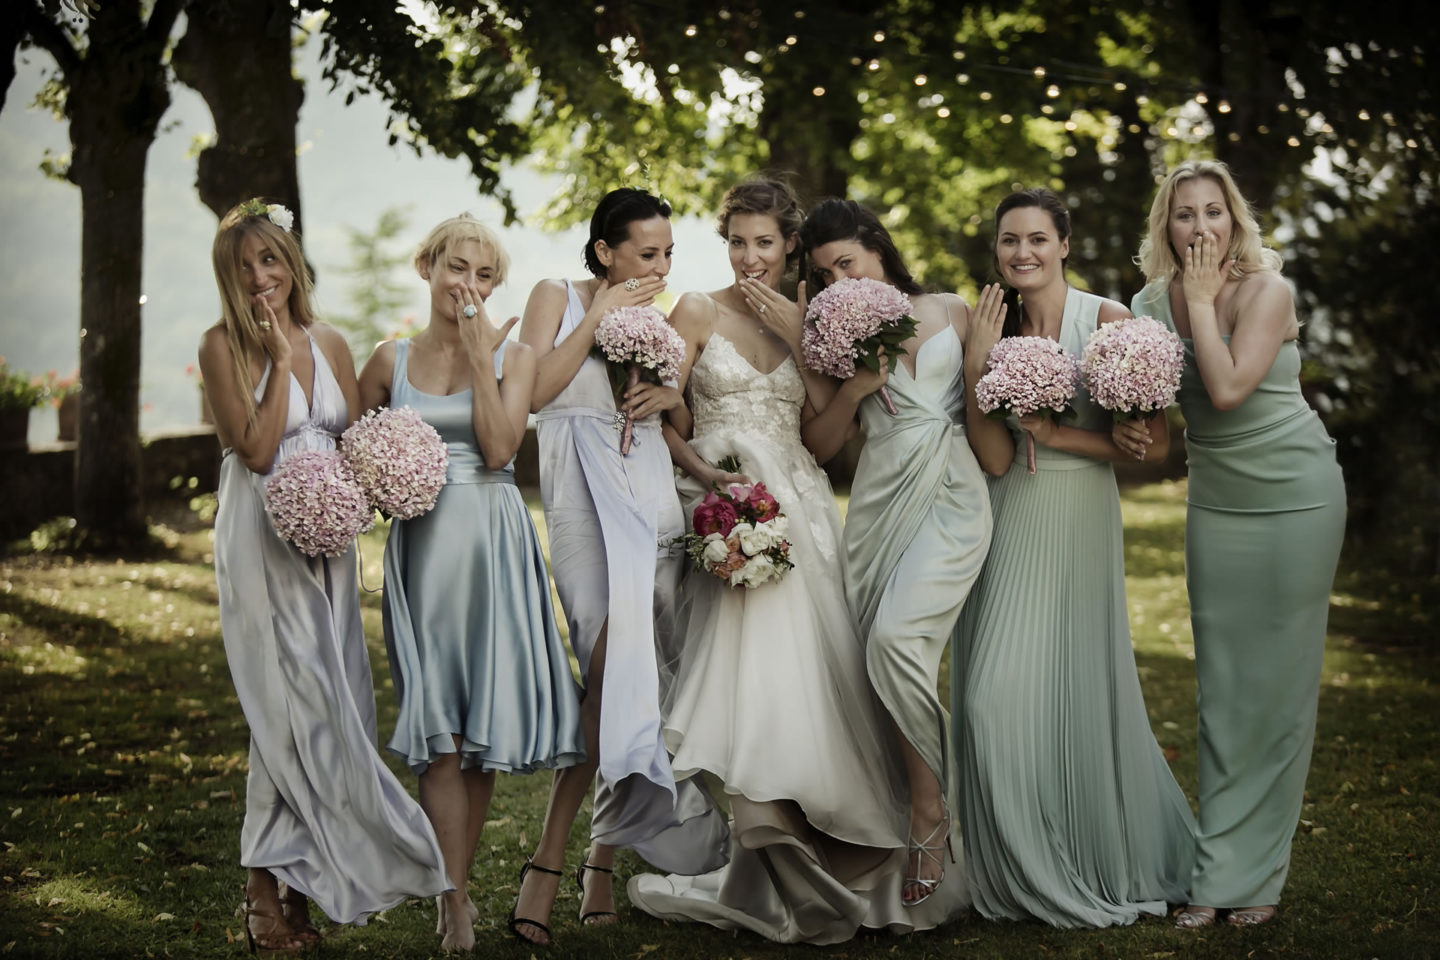 Bridal :: Groups Bridal Parties :: David Bastianoni wedding photographer